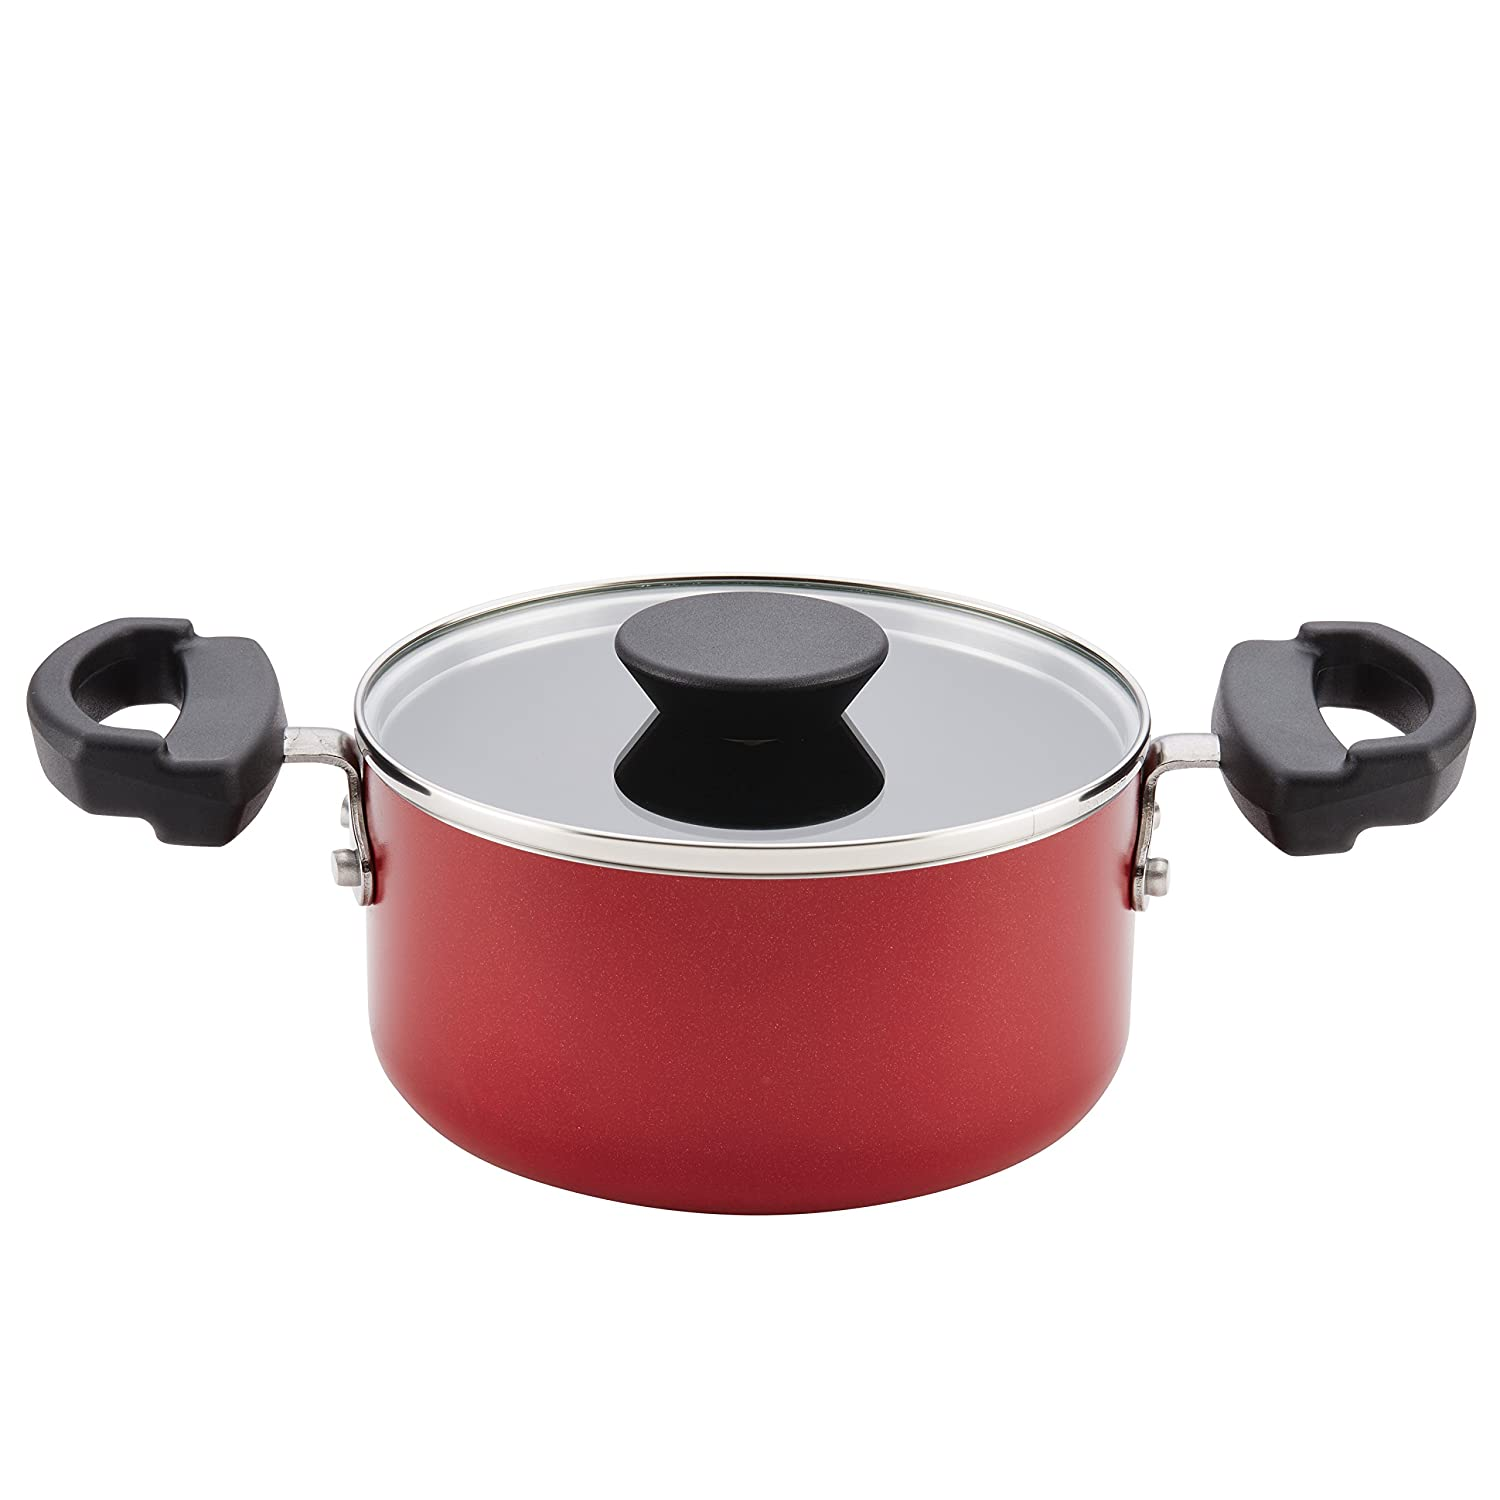 Farberware Neat Nest Space Saving 1.5-Quart Covered Saucepot with Lid, Red